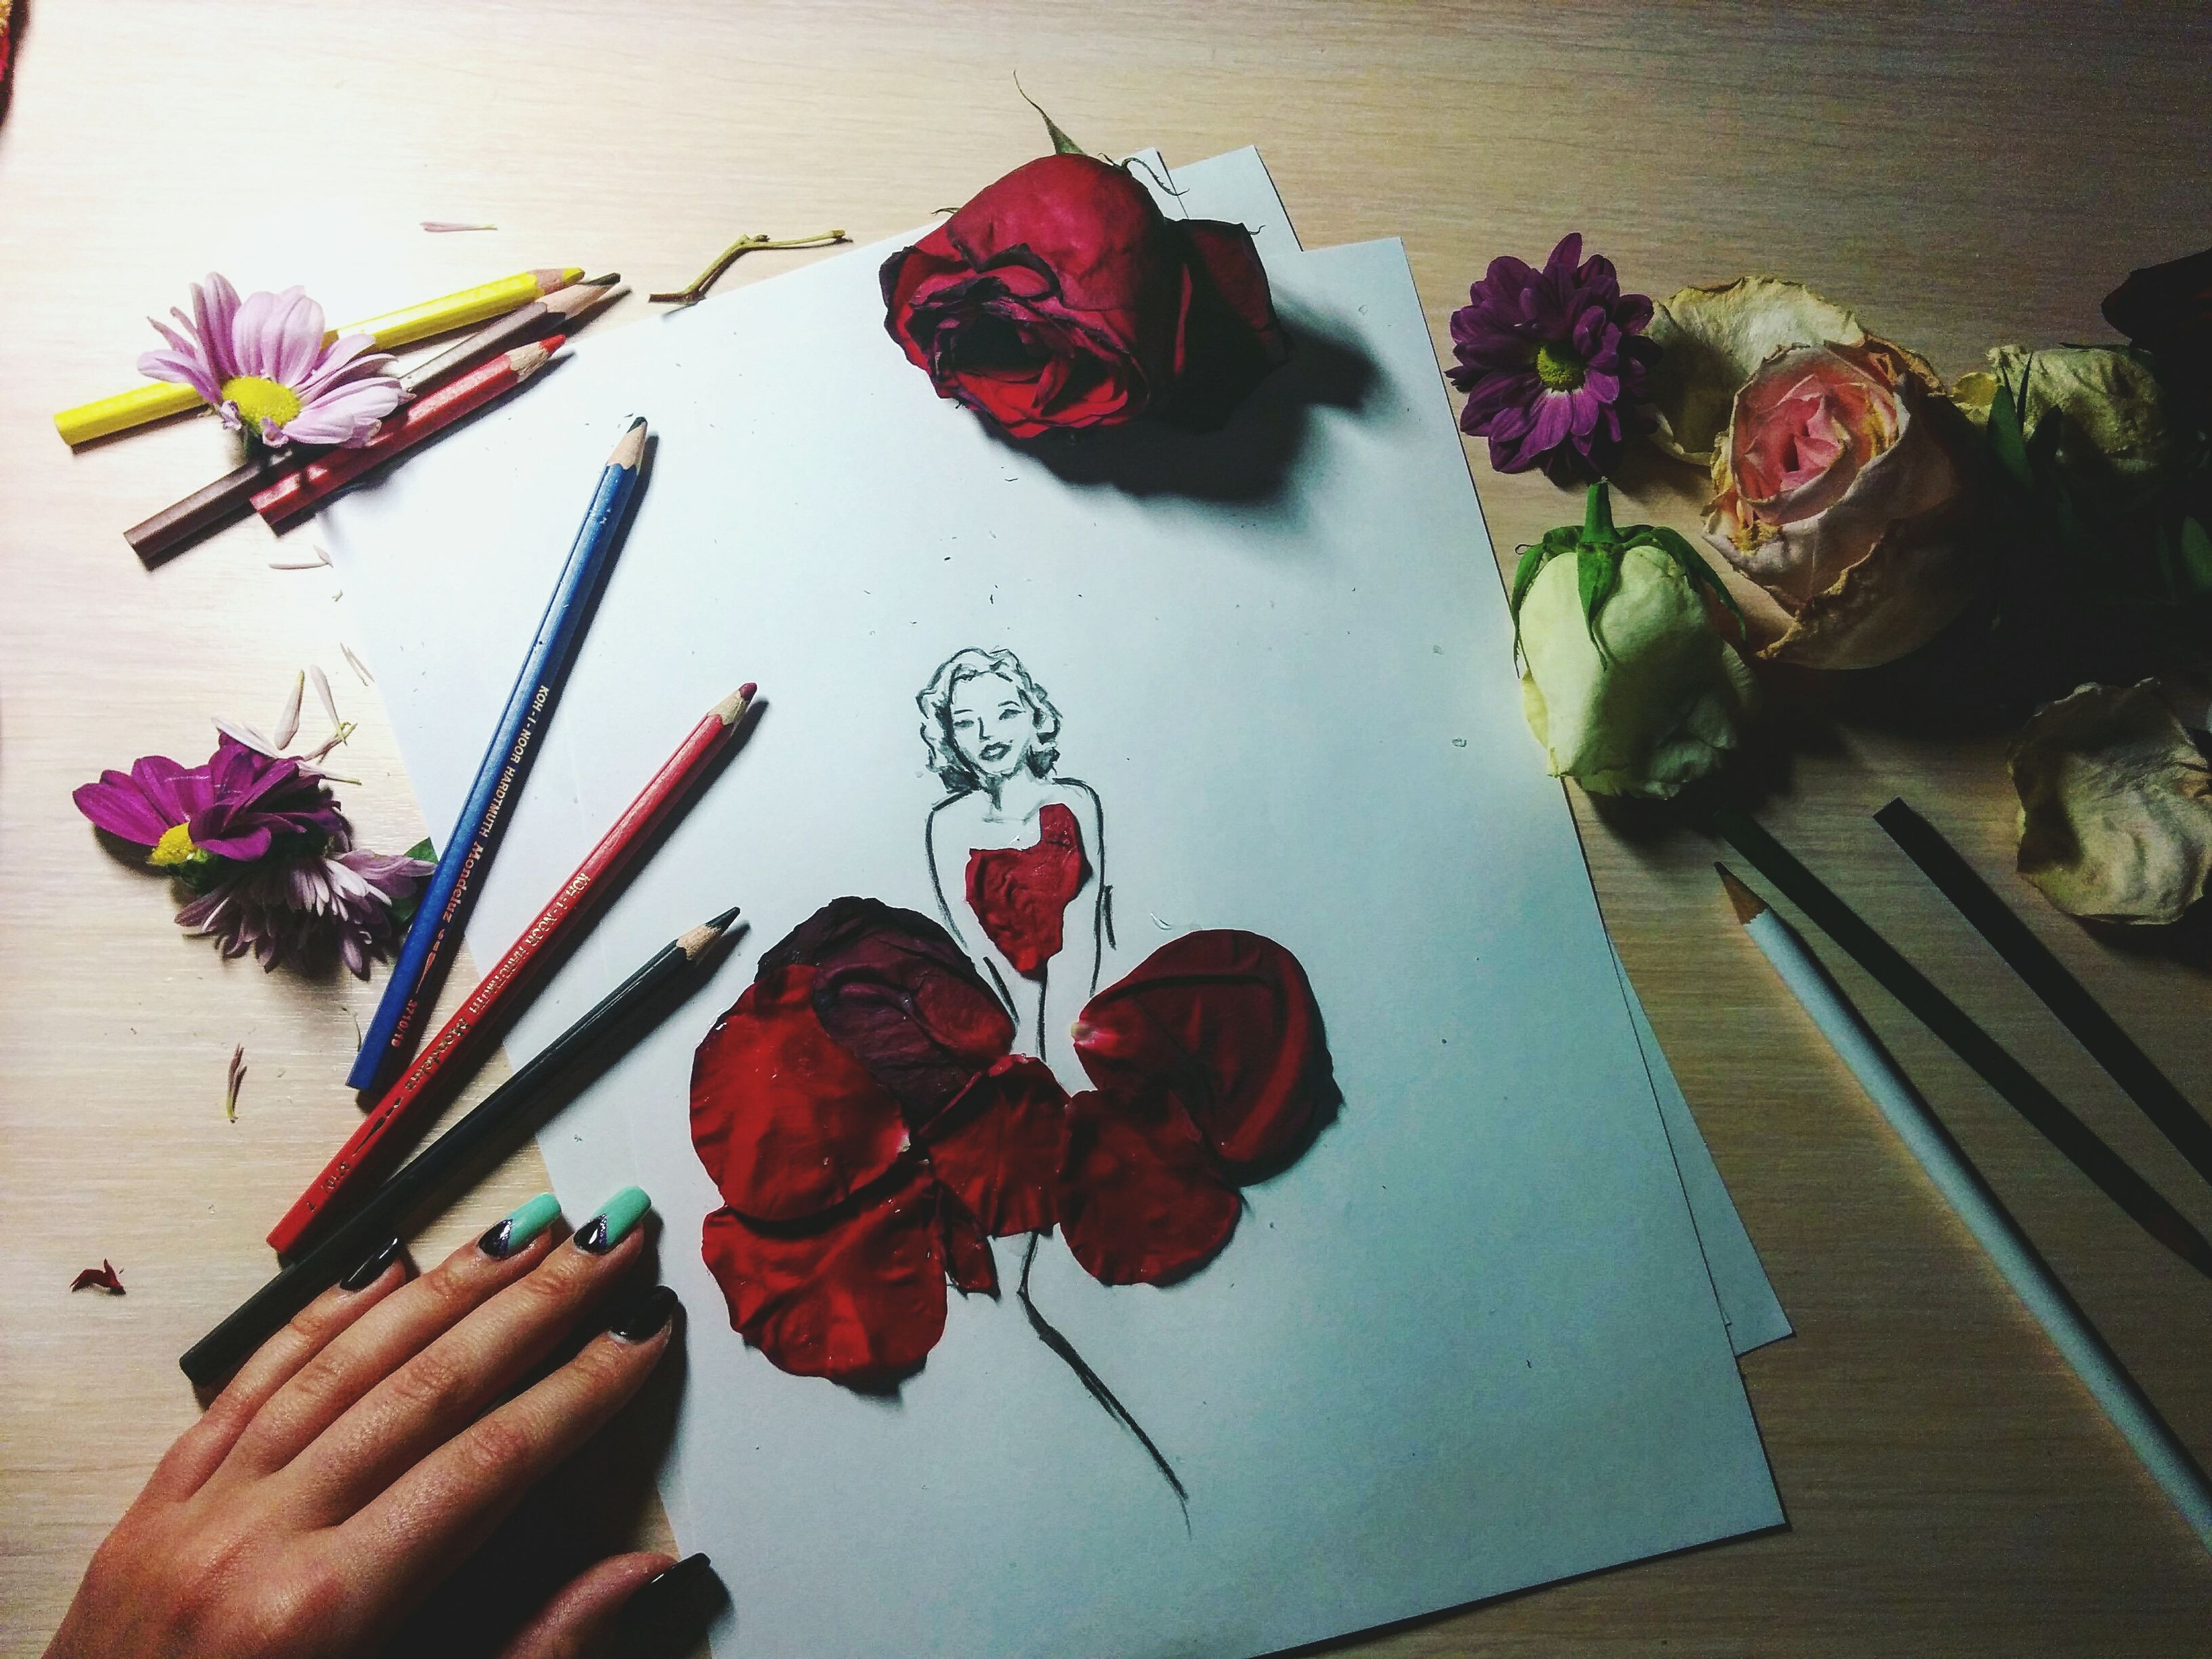 person, indoors, flower, holding, part of, freshness, table, paper, cropped, high angle view, bouquet, creativity, art, decoration, human finger, unrecognizable person, vase